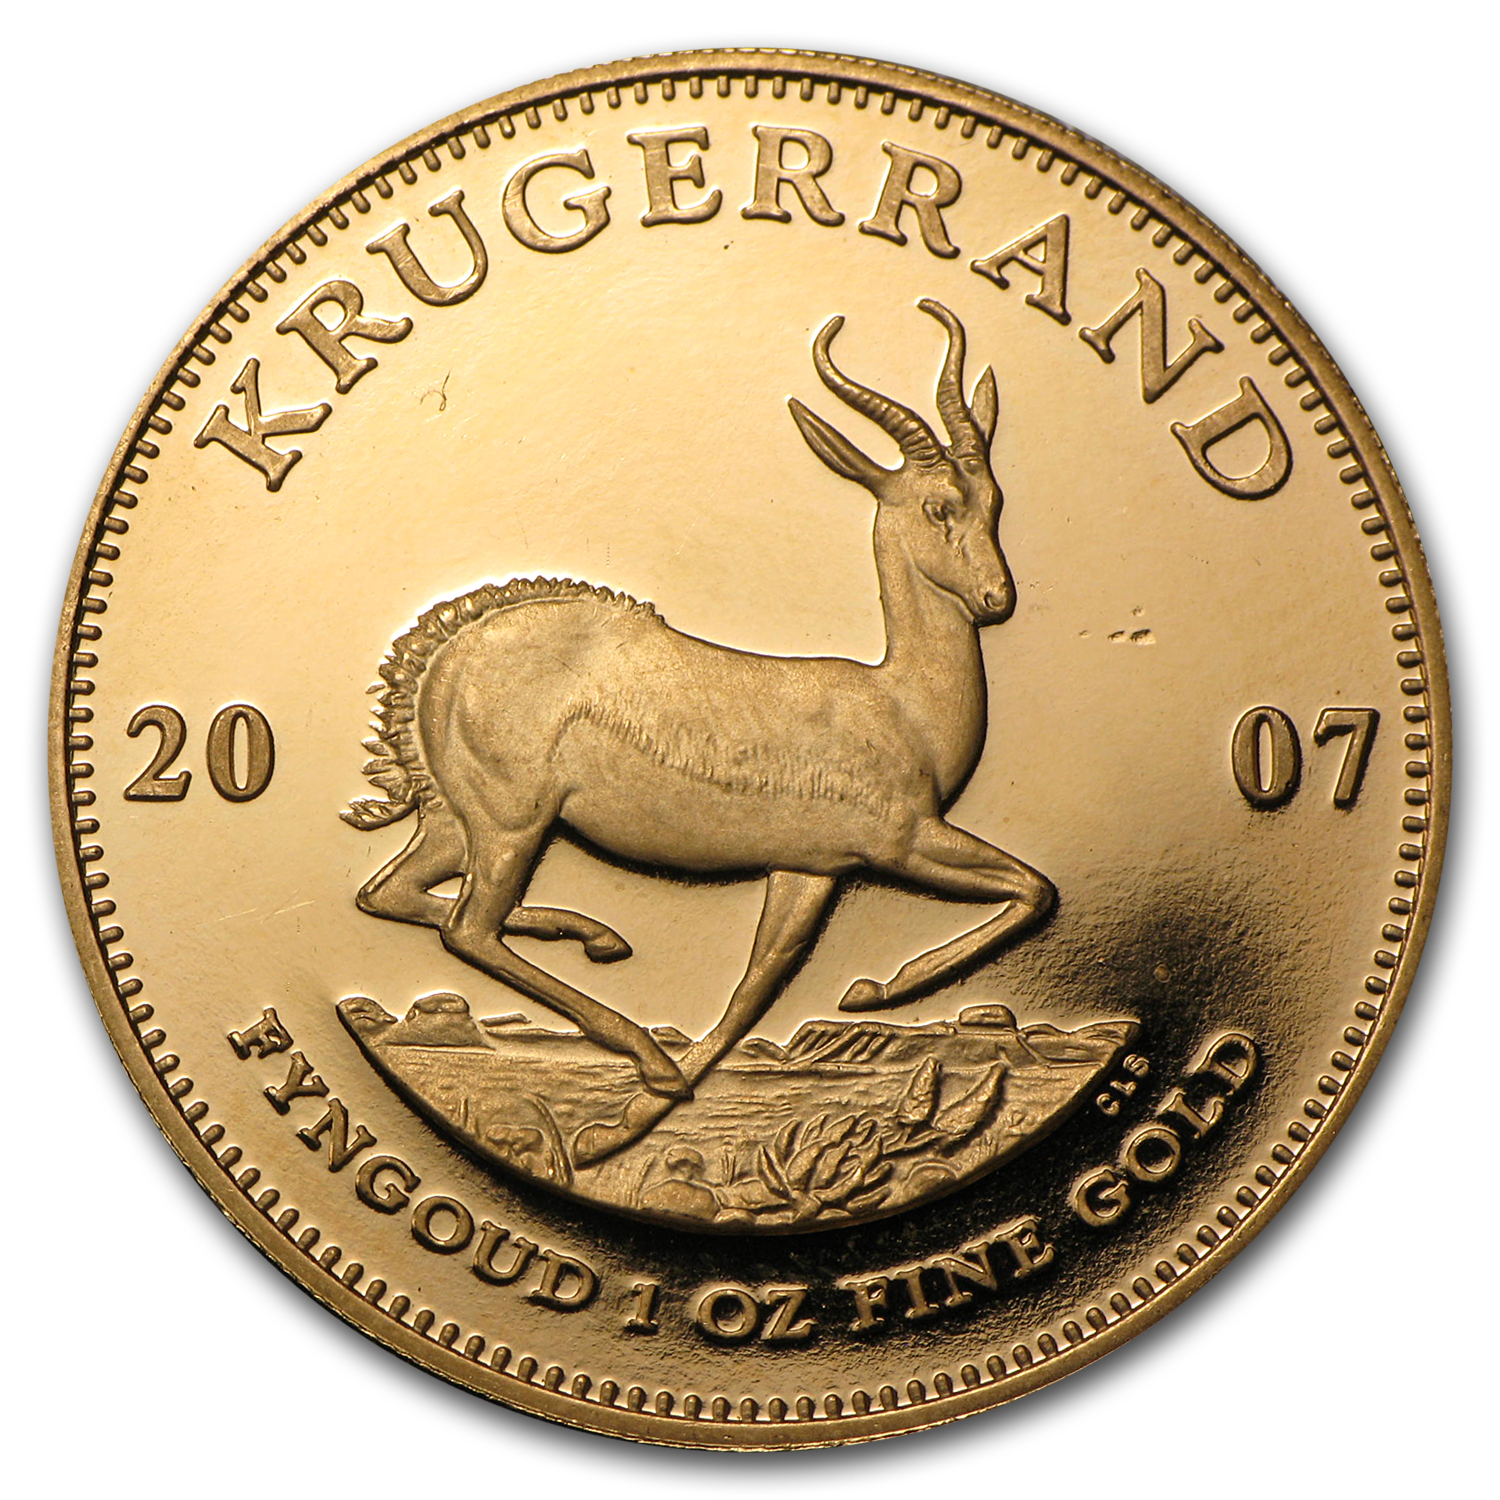 2007 South Africa 1 oz Proof Gold Krugerrand